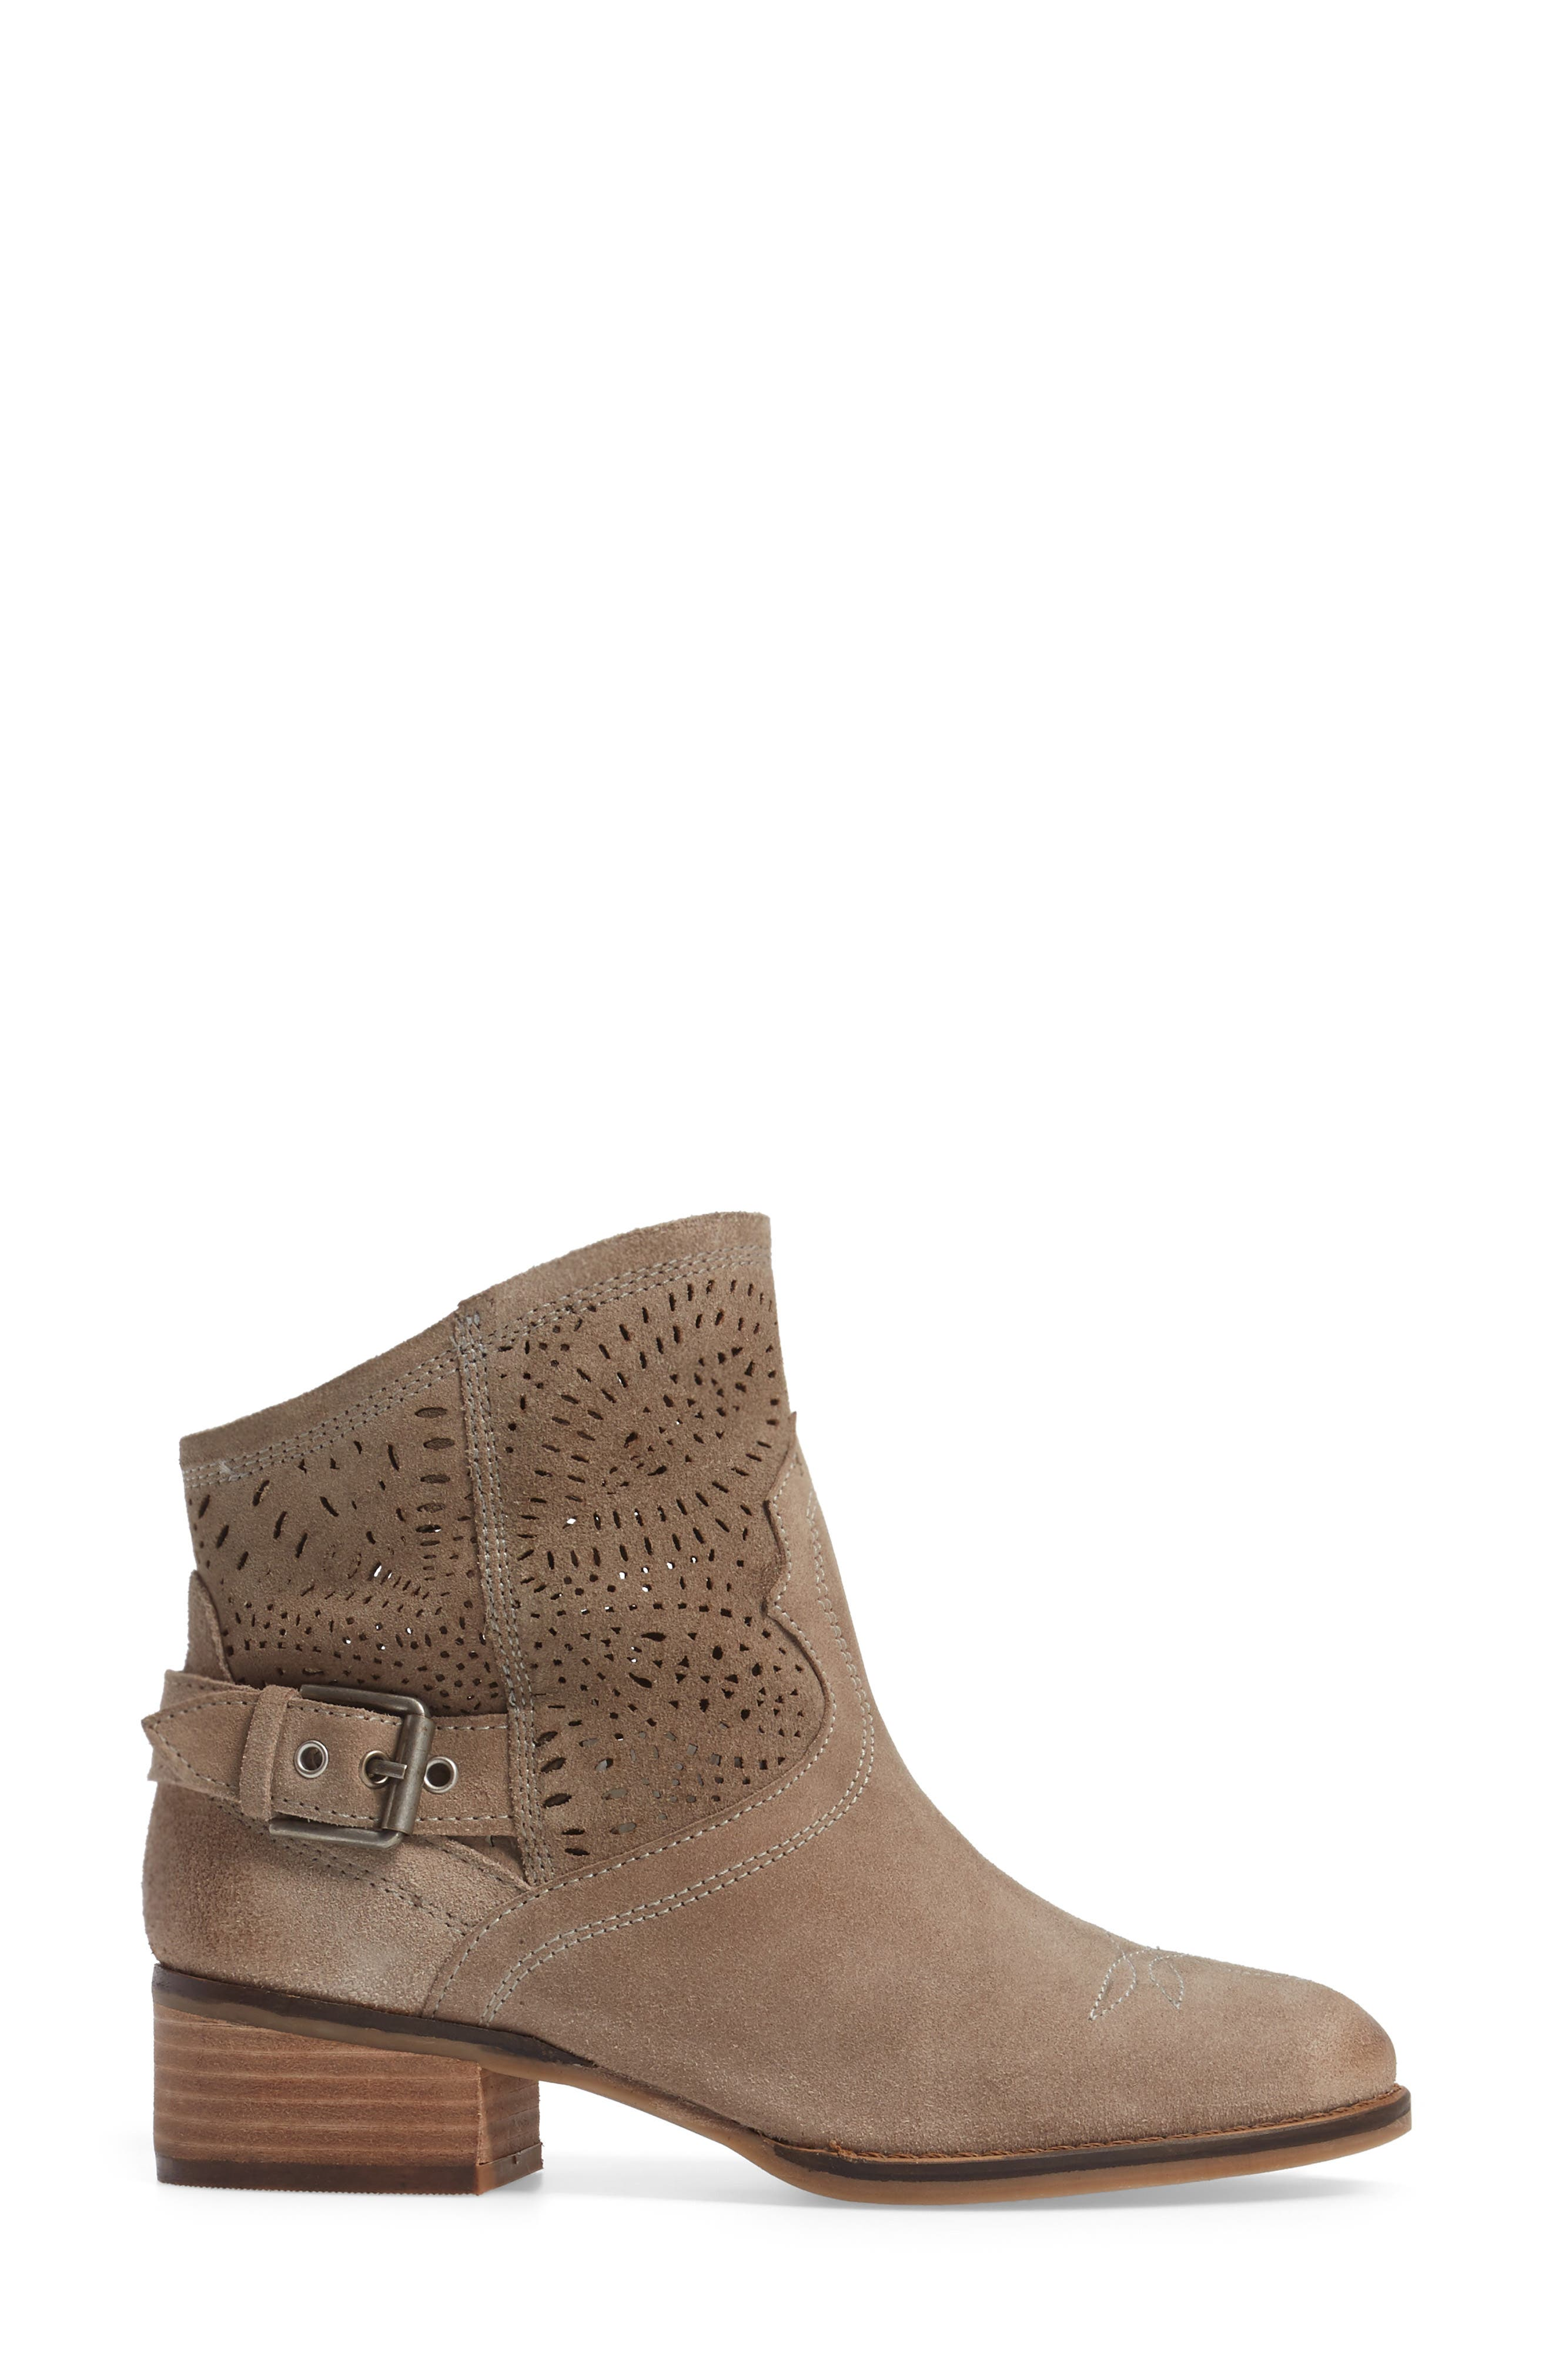 Zoey Perforated Bootie,                             Alternate thumbnail 11, color,